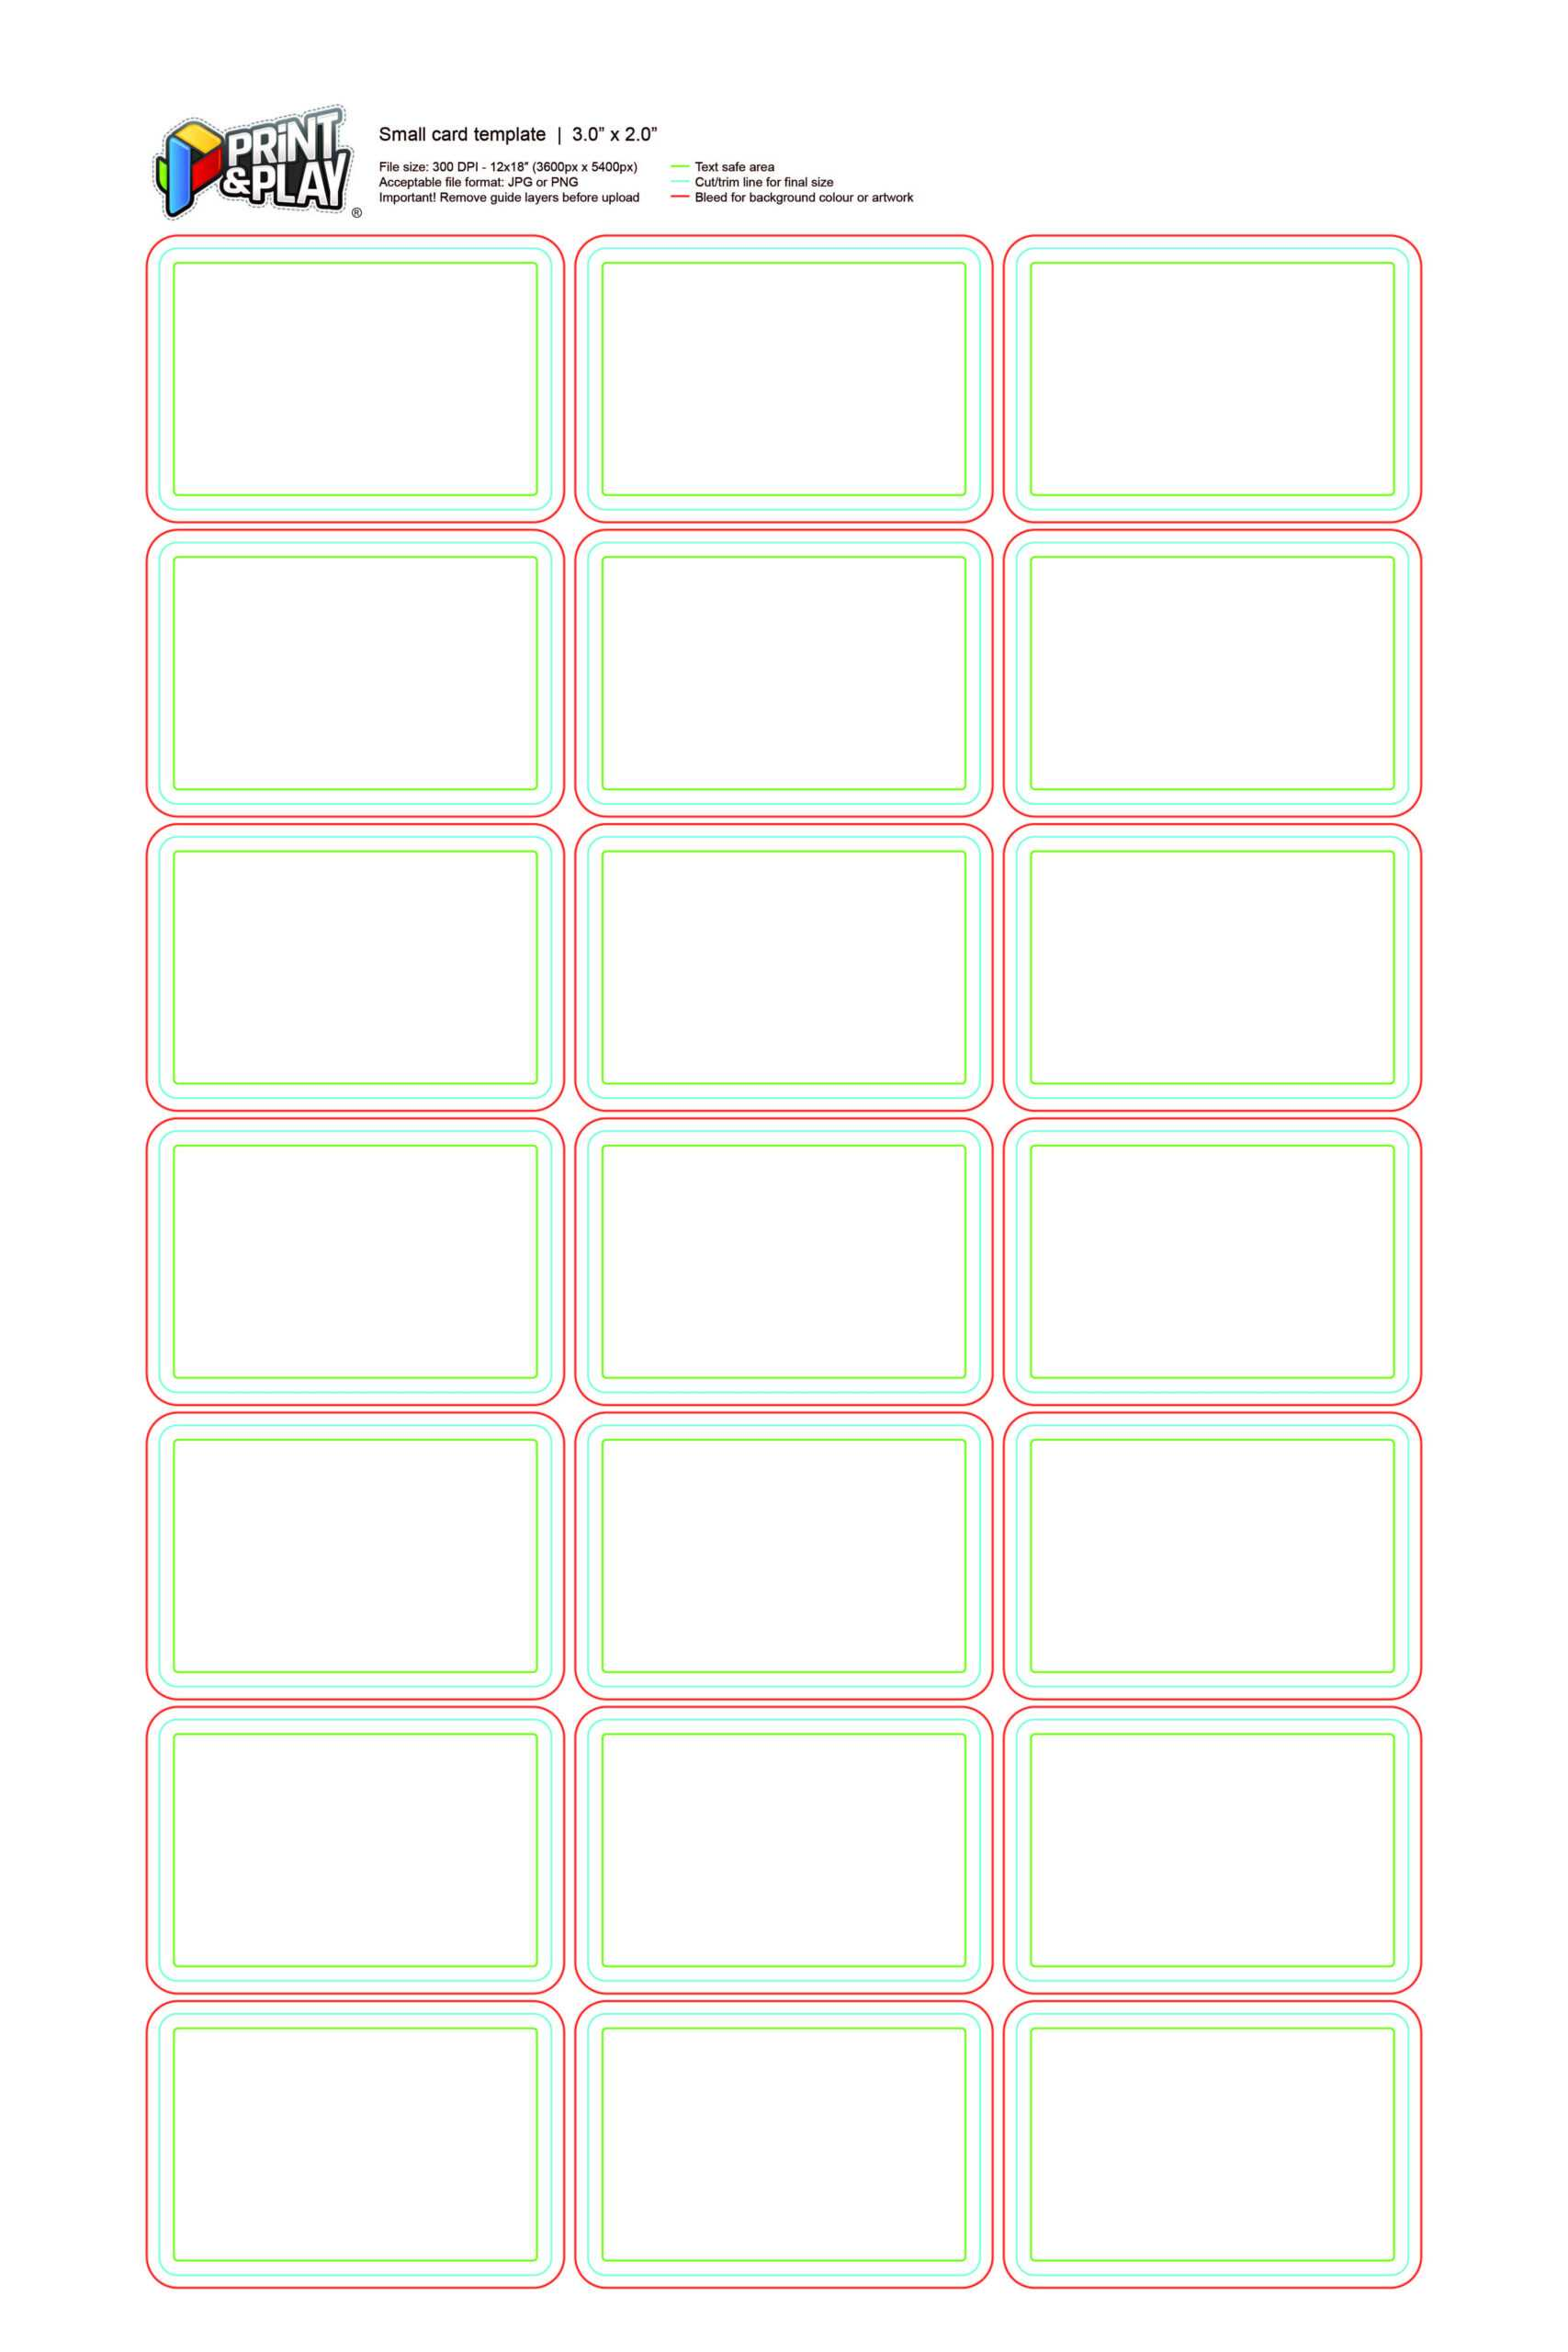 Place Card Template 375 X 175 – Www Pertaining To Place Card Size Template